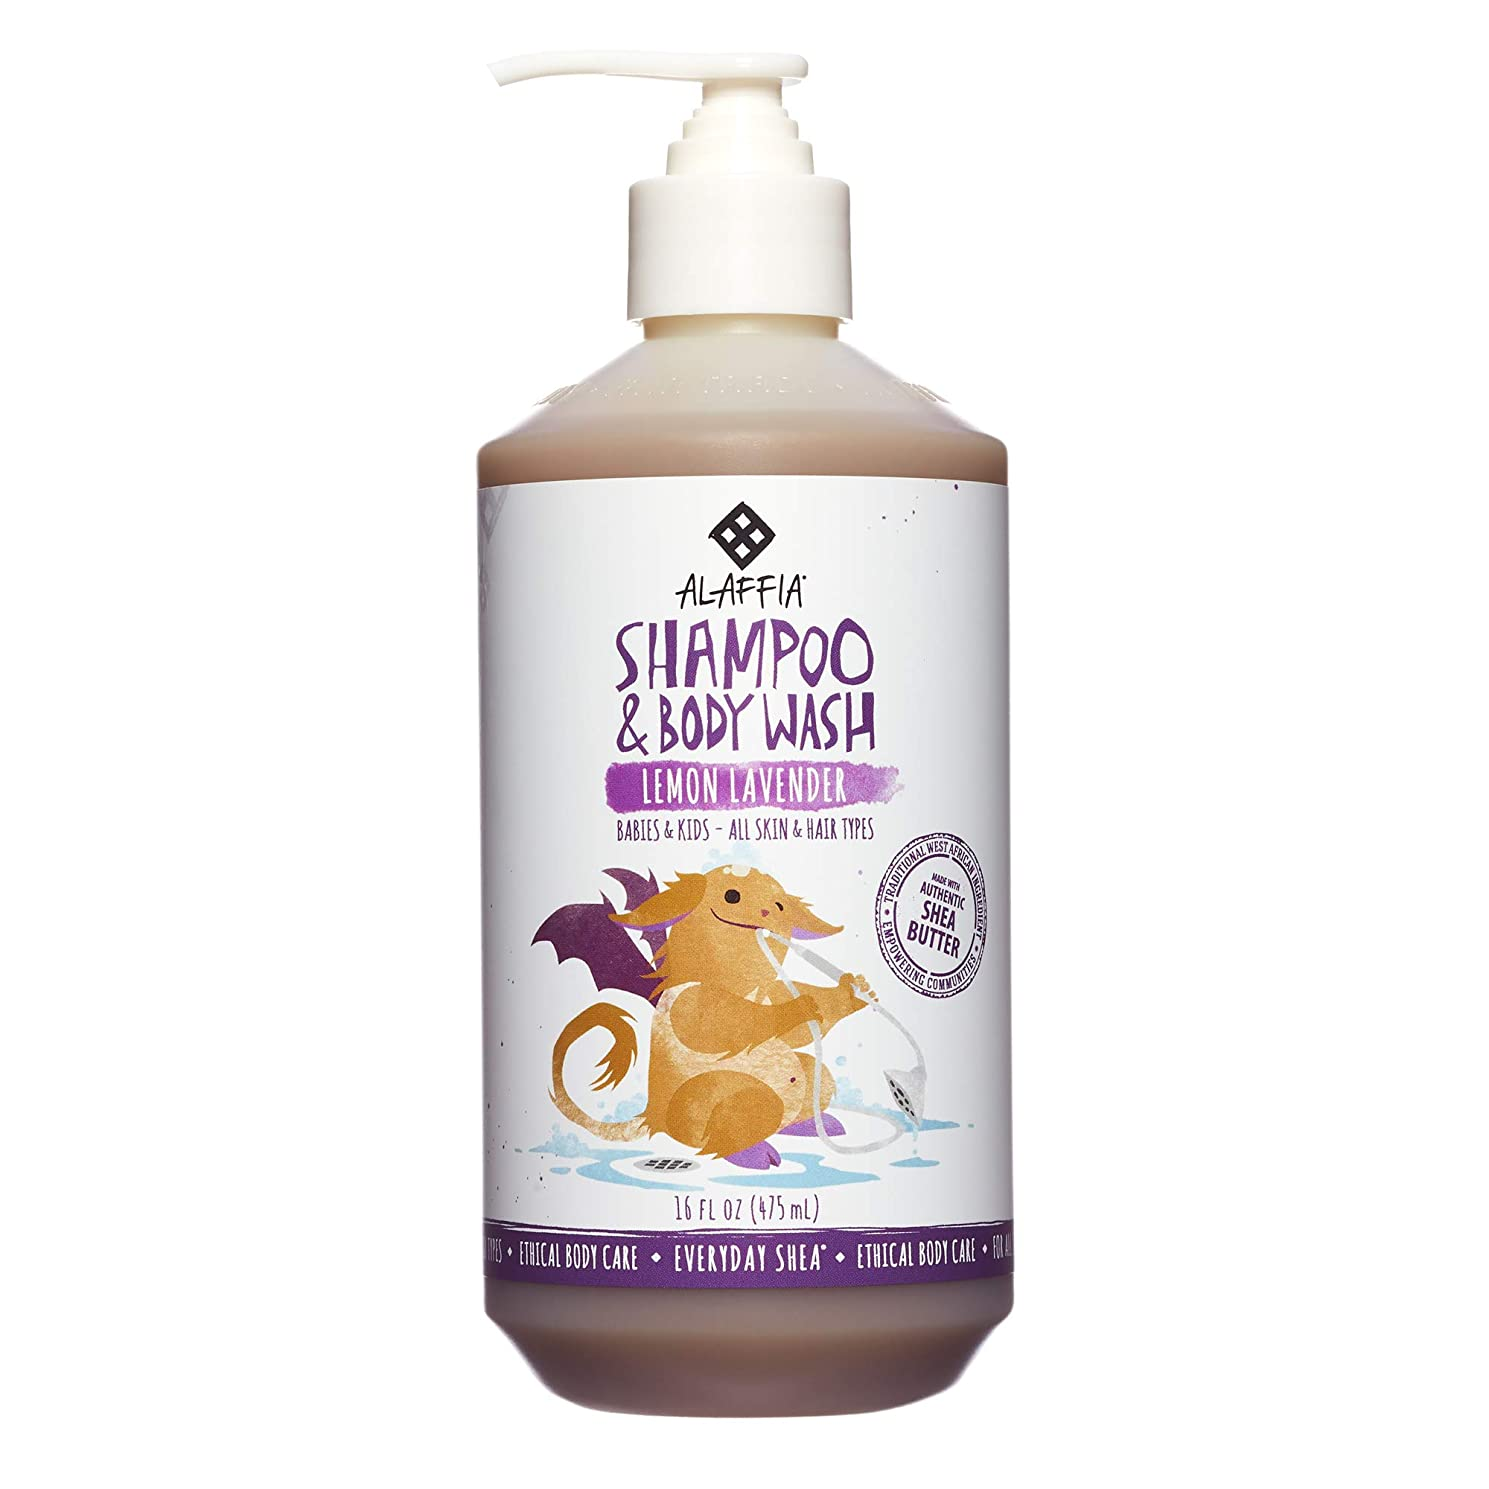 中央値倫理的牛Alaffia Everyday Shea Shampoo & Body Wash for Babies and Up Lemon Lavender 16 oz Size: 16 oz CustomerPackageType: Standard Packaging, Model: C580, Baby & Child Shop by Baby & Child Shop